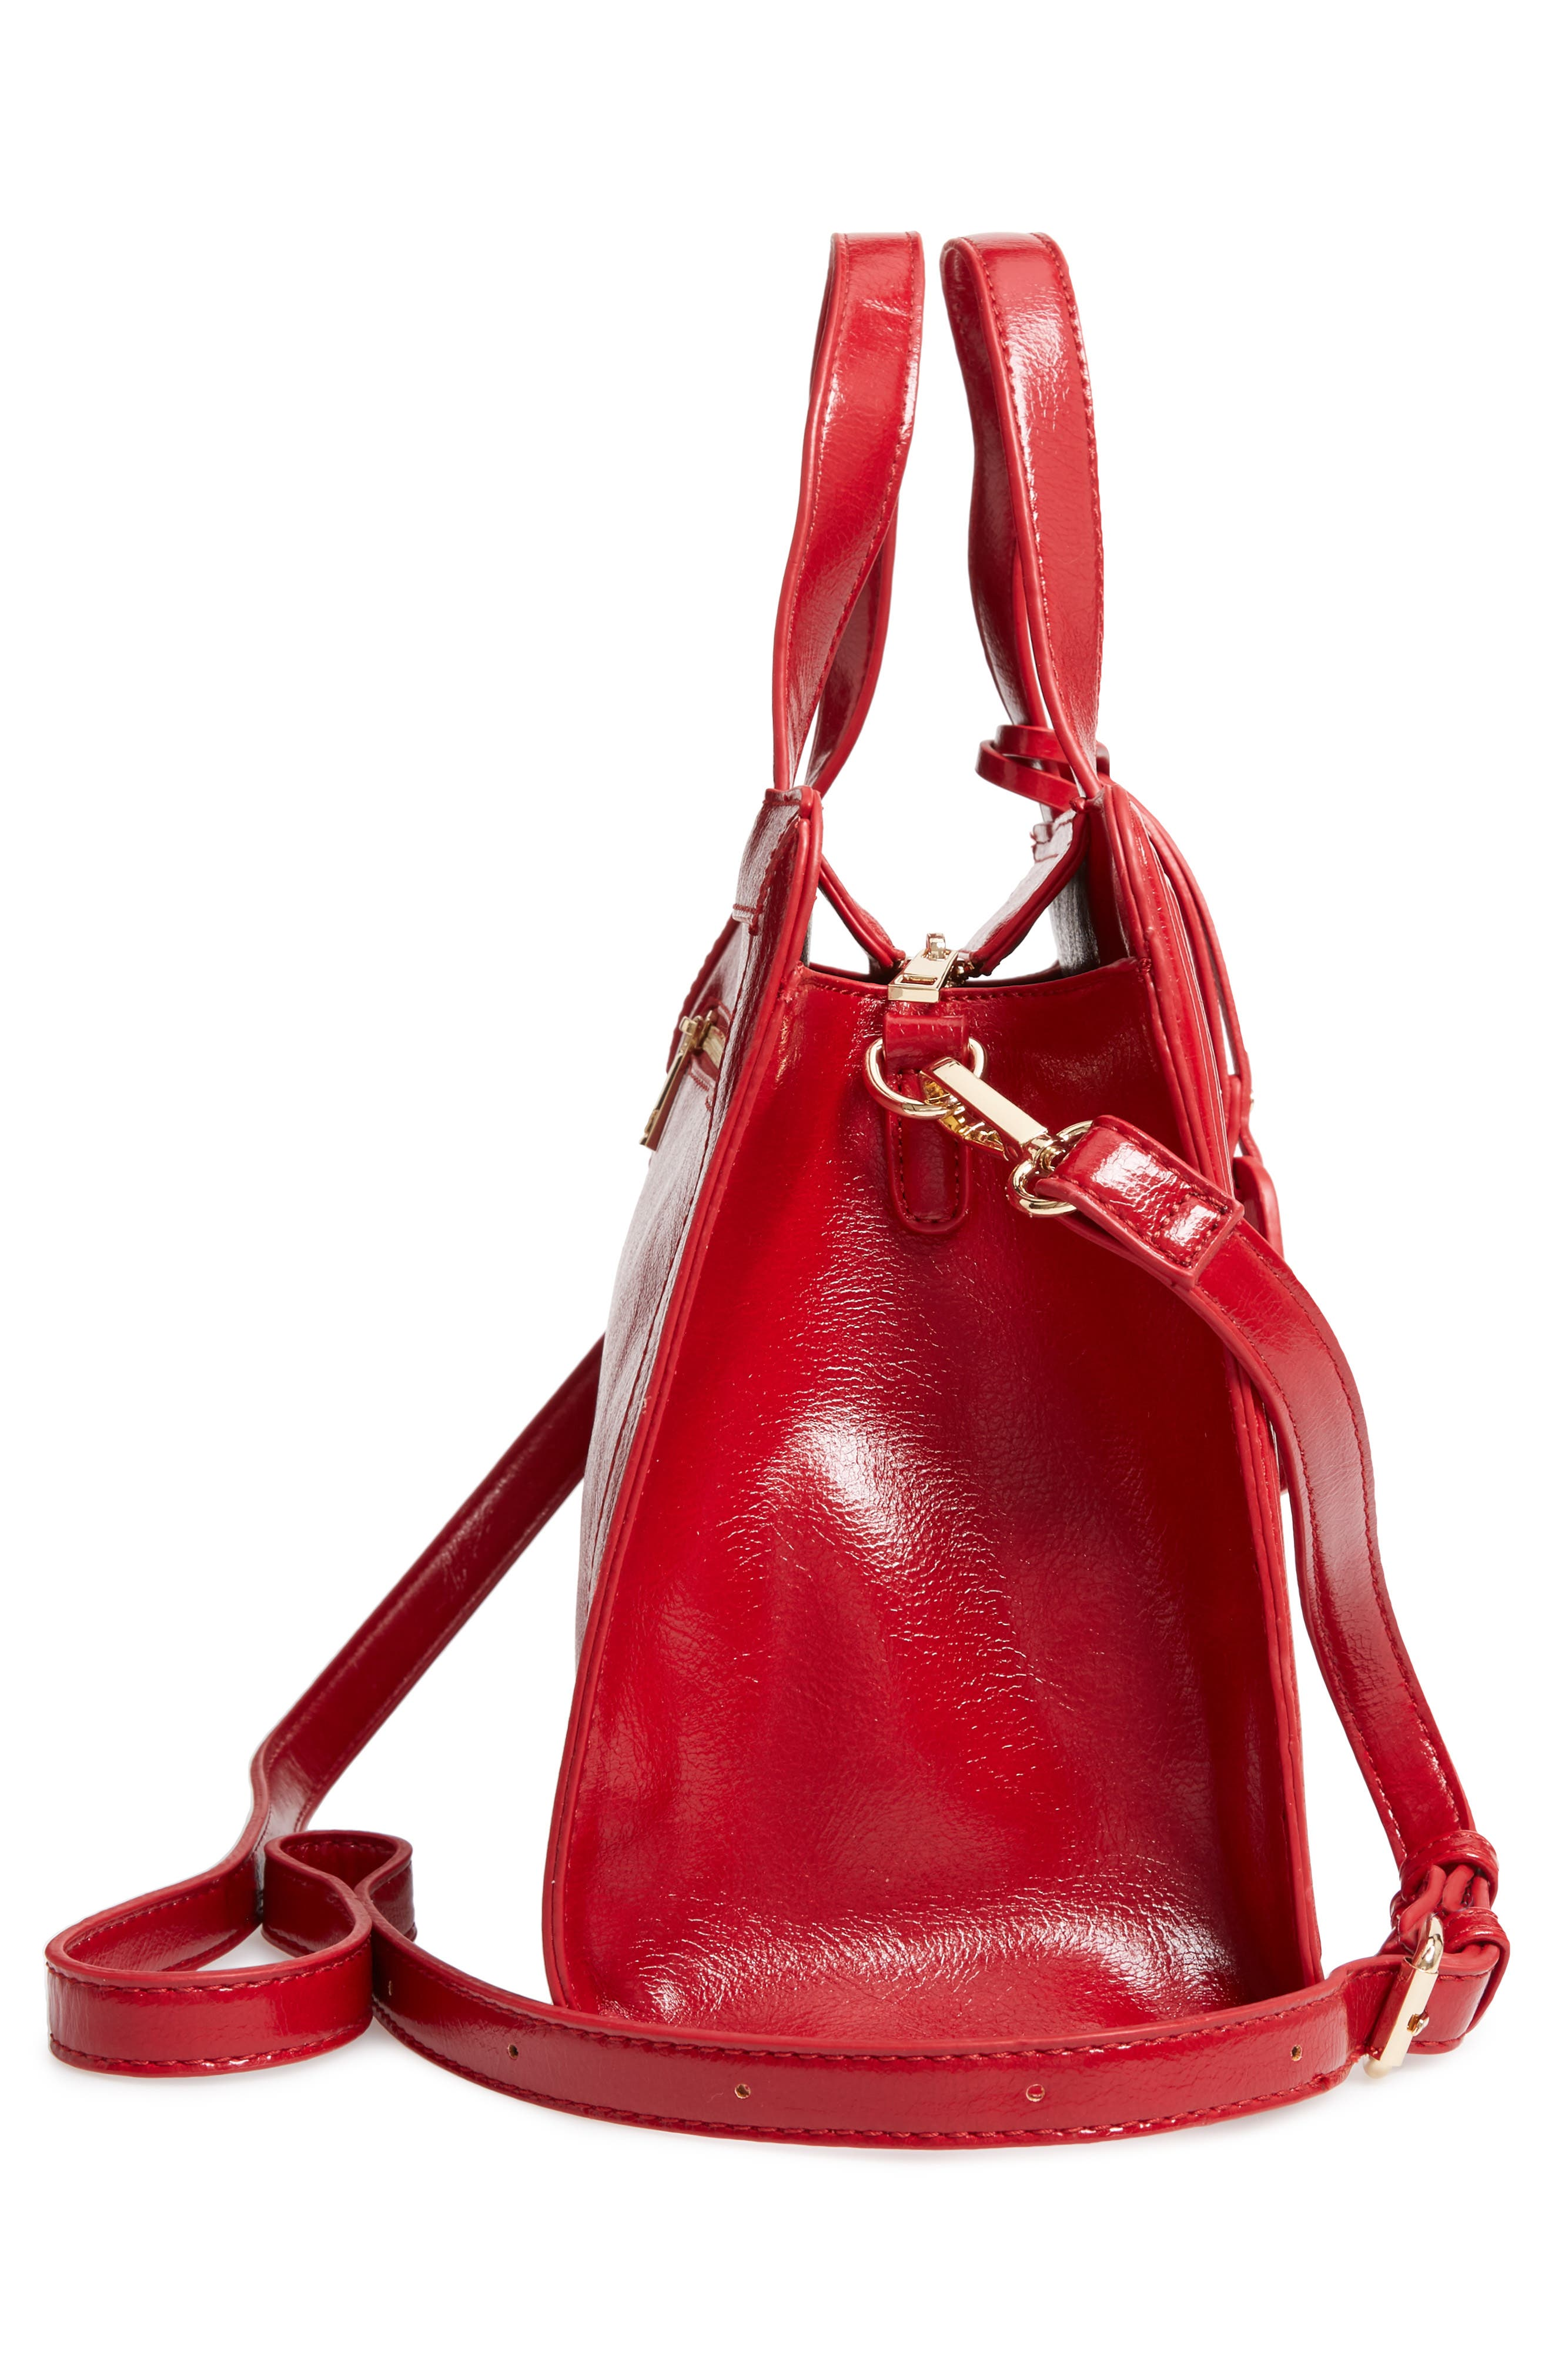 SOLE SOCIETY, Aisln Faux Leather Satchel, Alternate thumbnail 5, color, RED